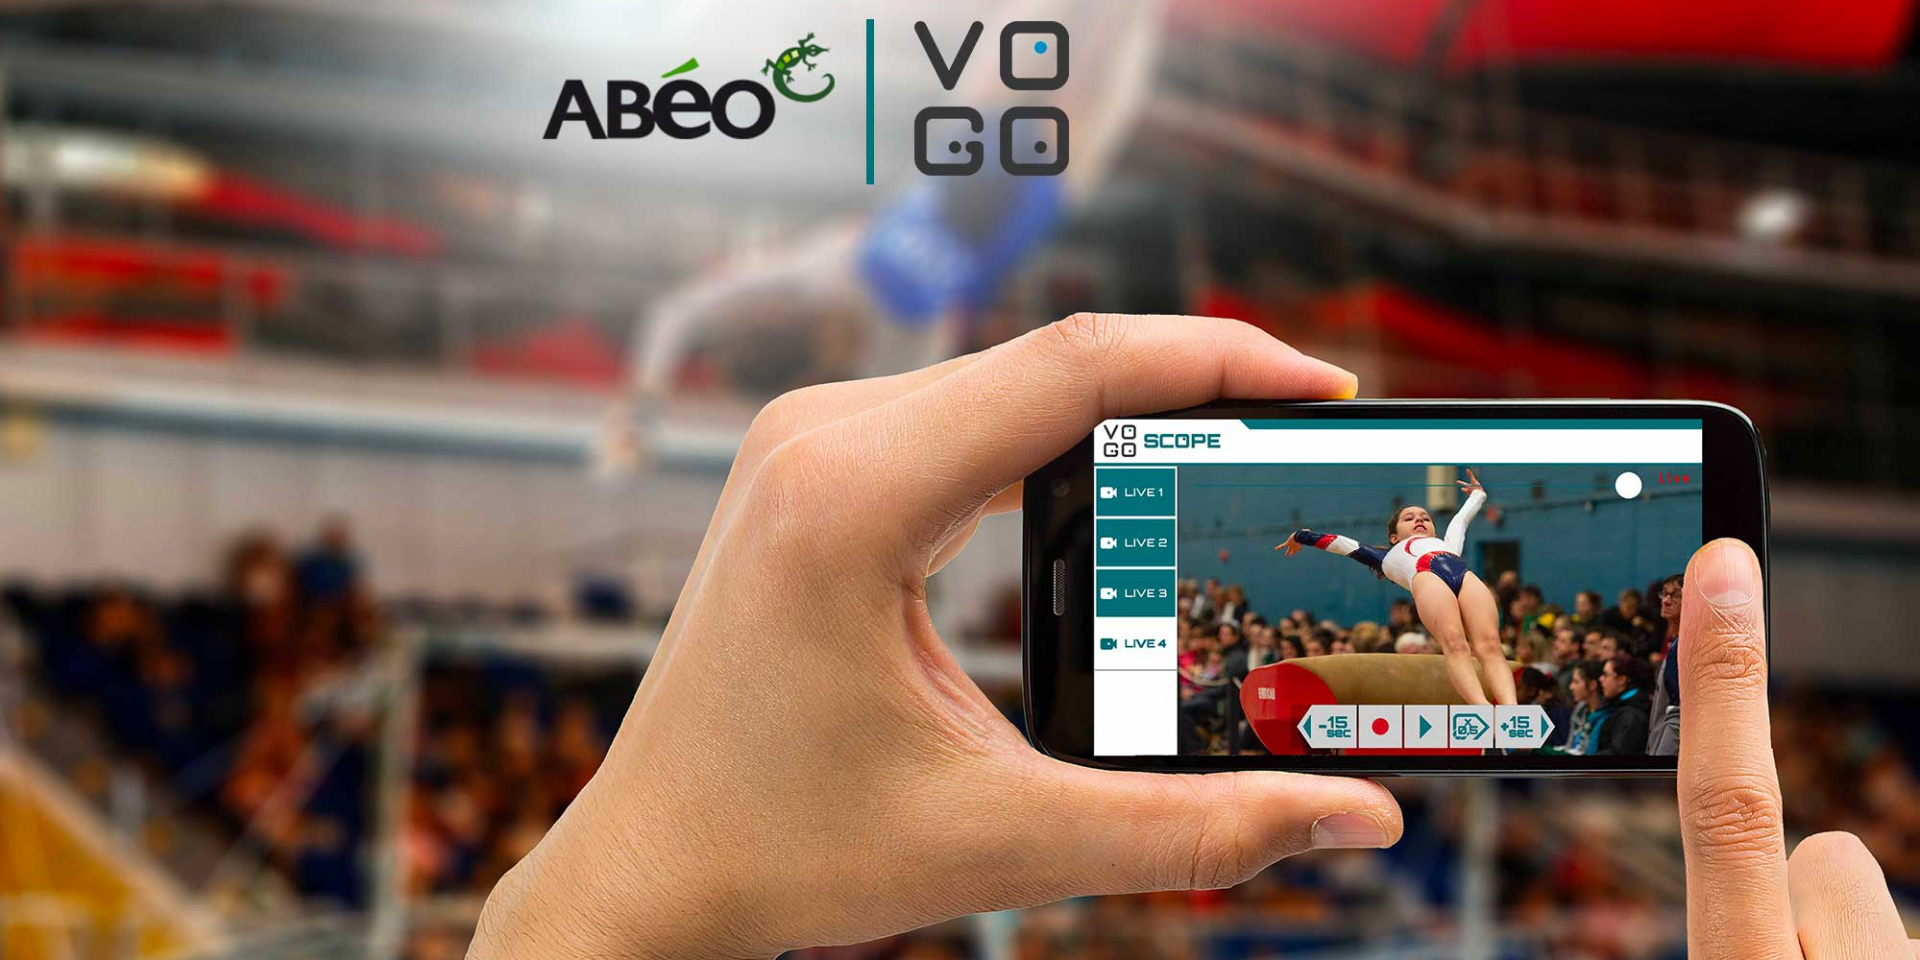 Technological and commercial alliance between ABEO and VOGO